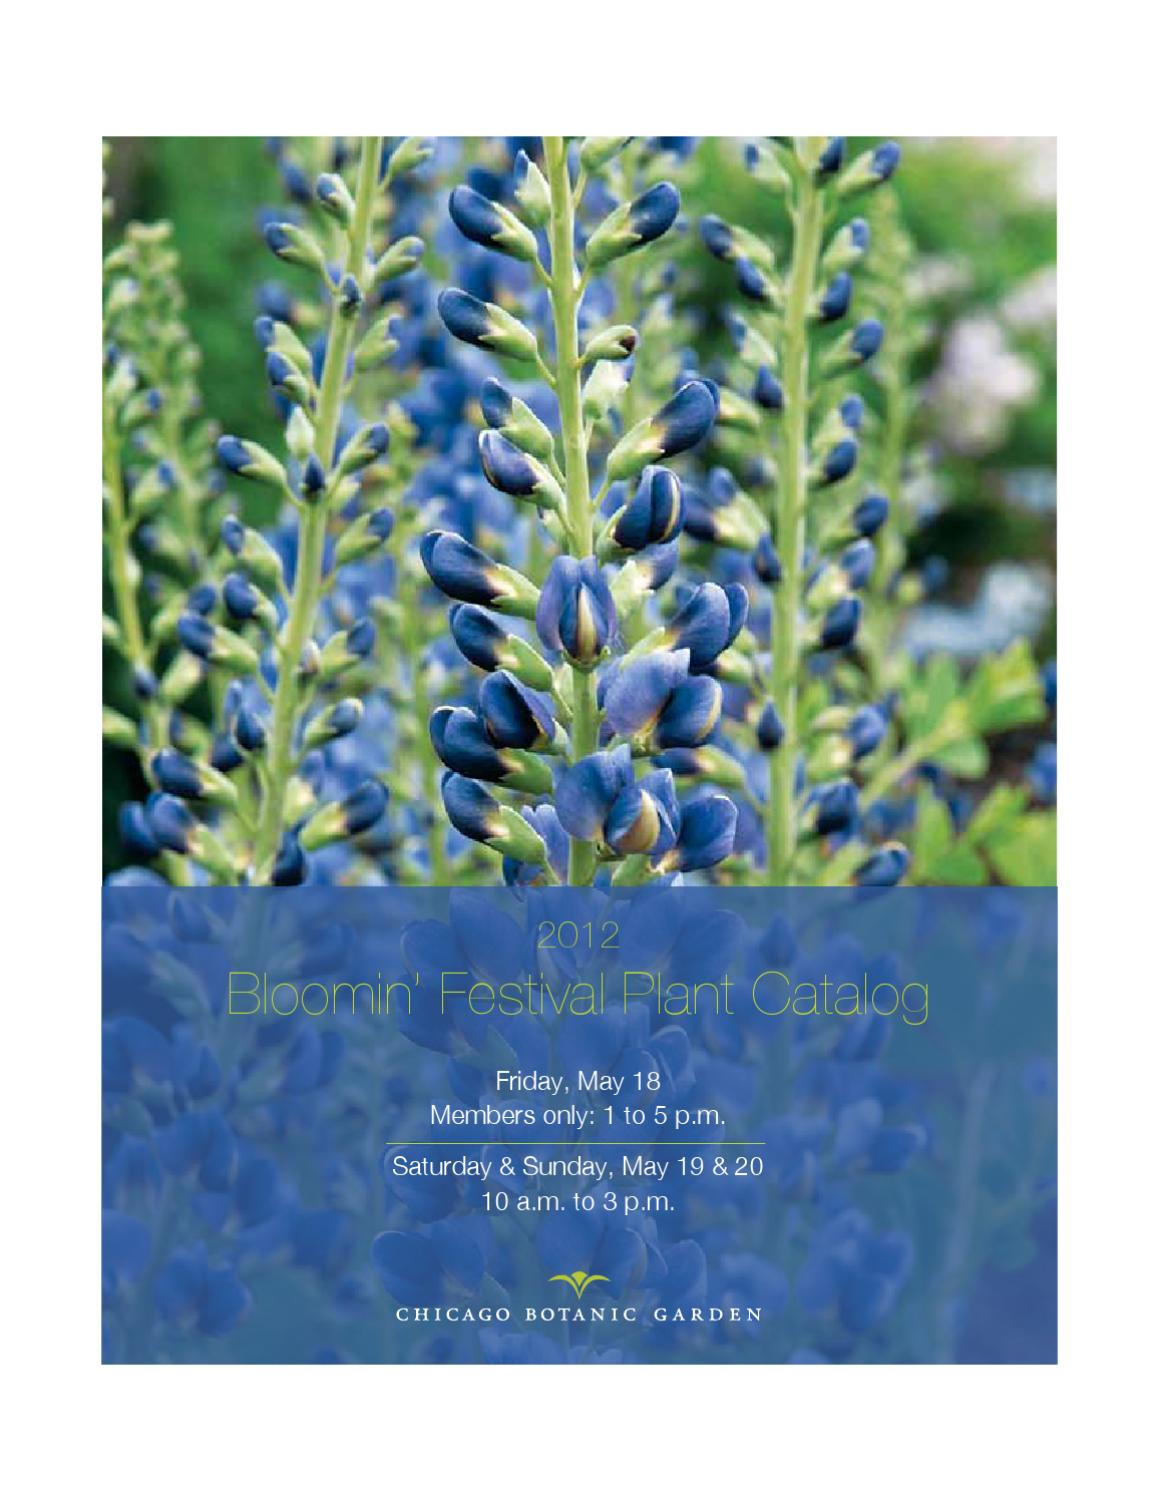 66717838cf5b Bloomin Festival Plant Catalog by Chicago Botanic Garden - issuu